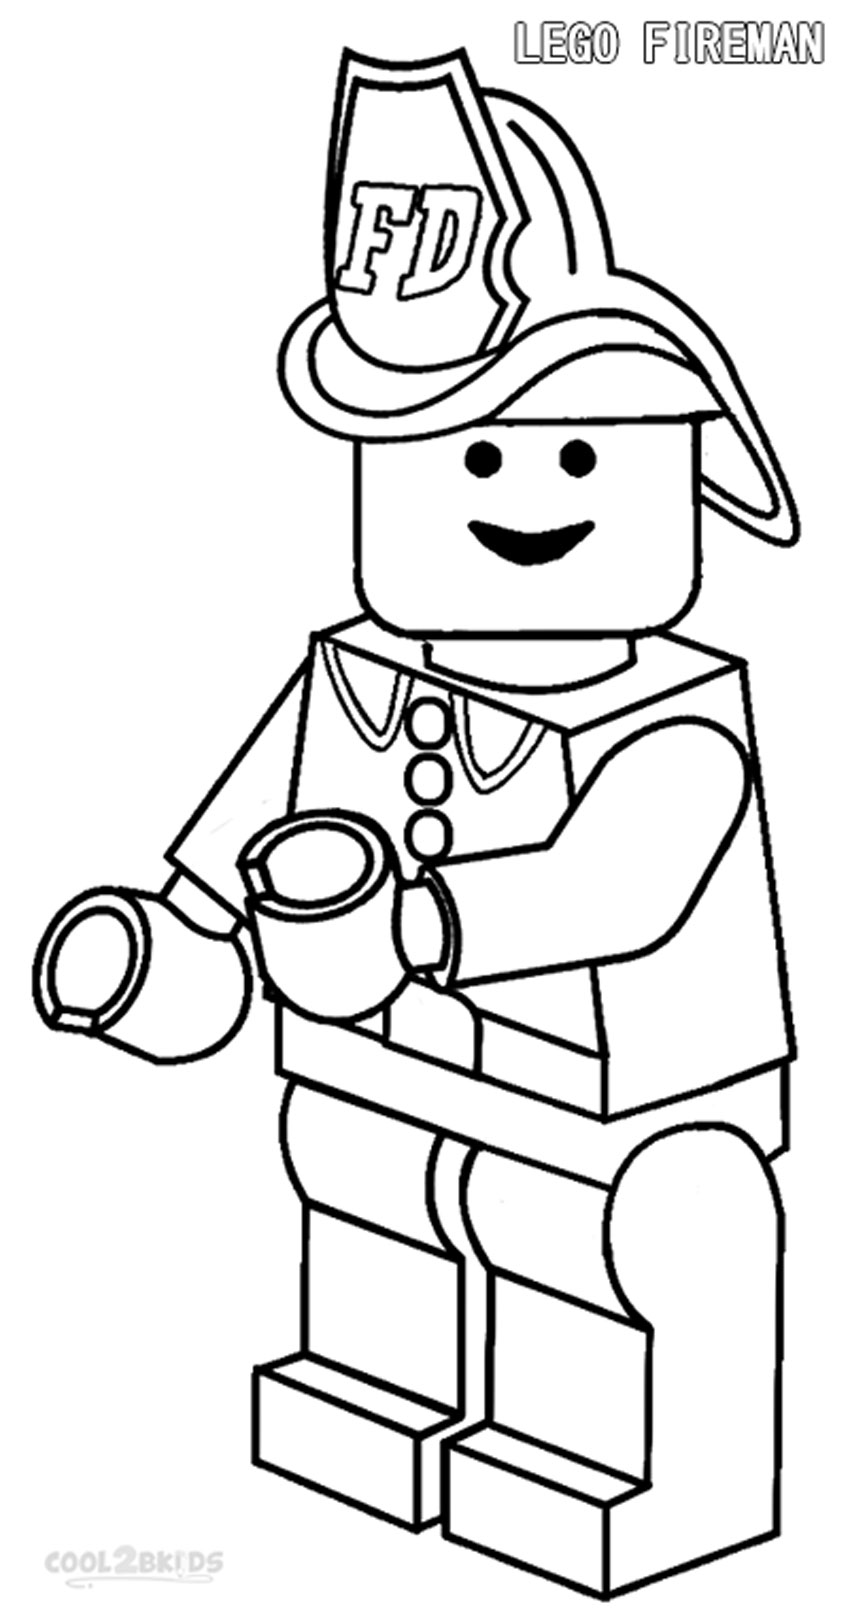 lego coloring pages to print free lego pirates coloring pages free printable lego pirates pages coloring to print lego free